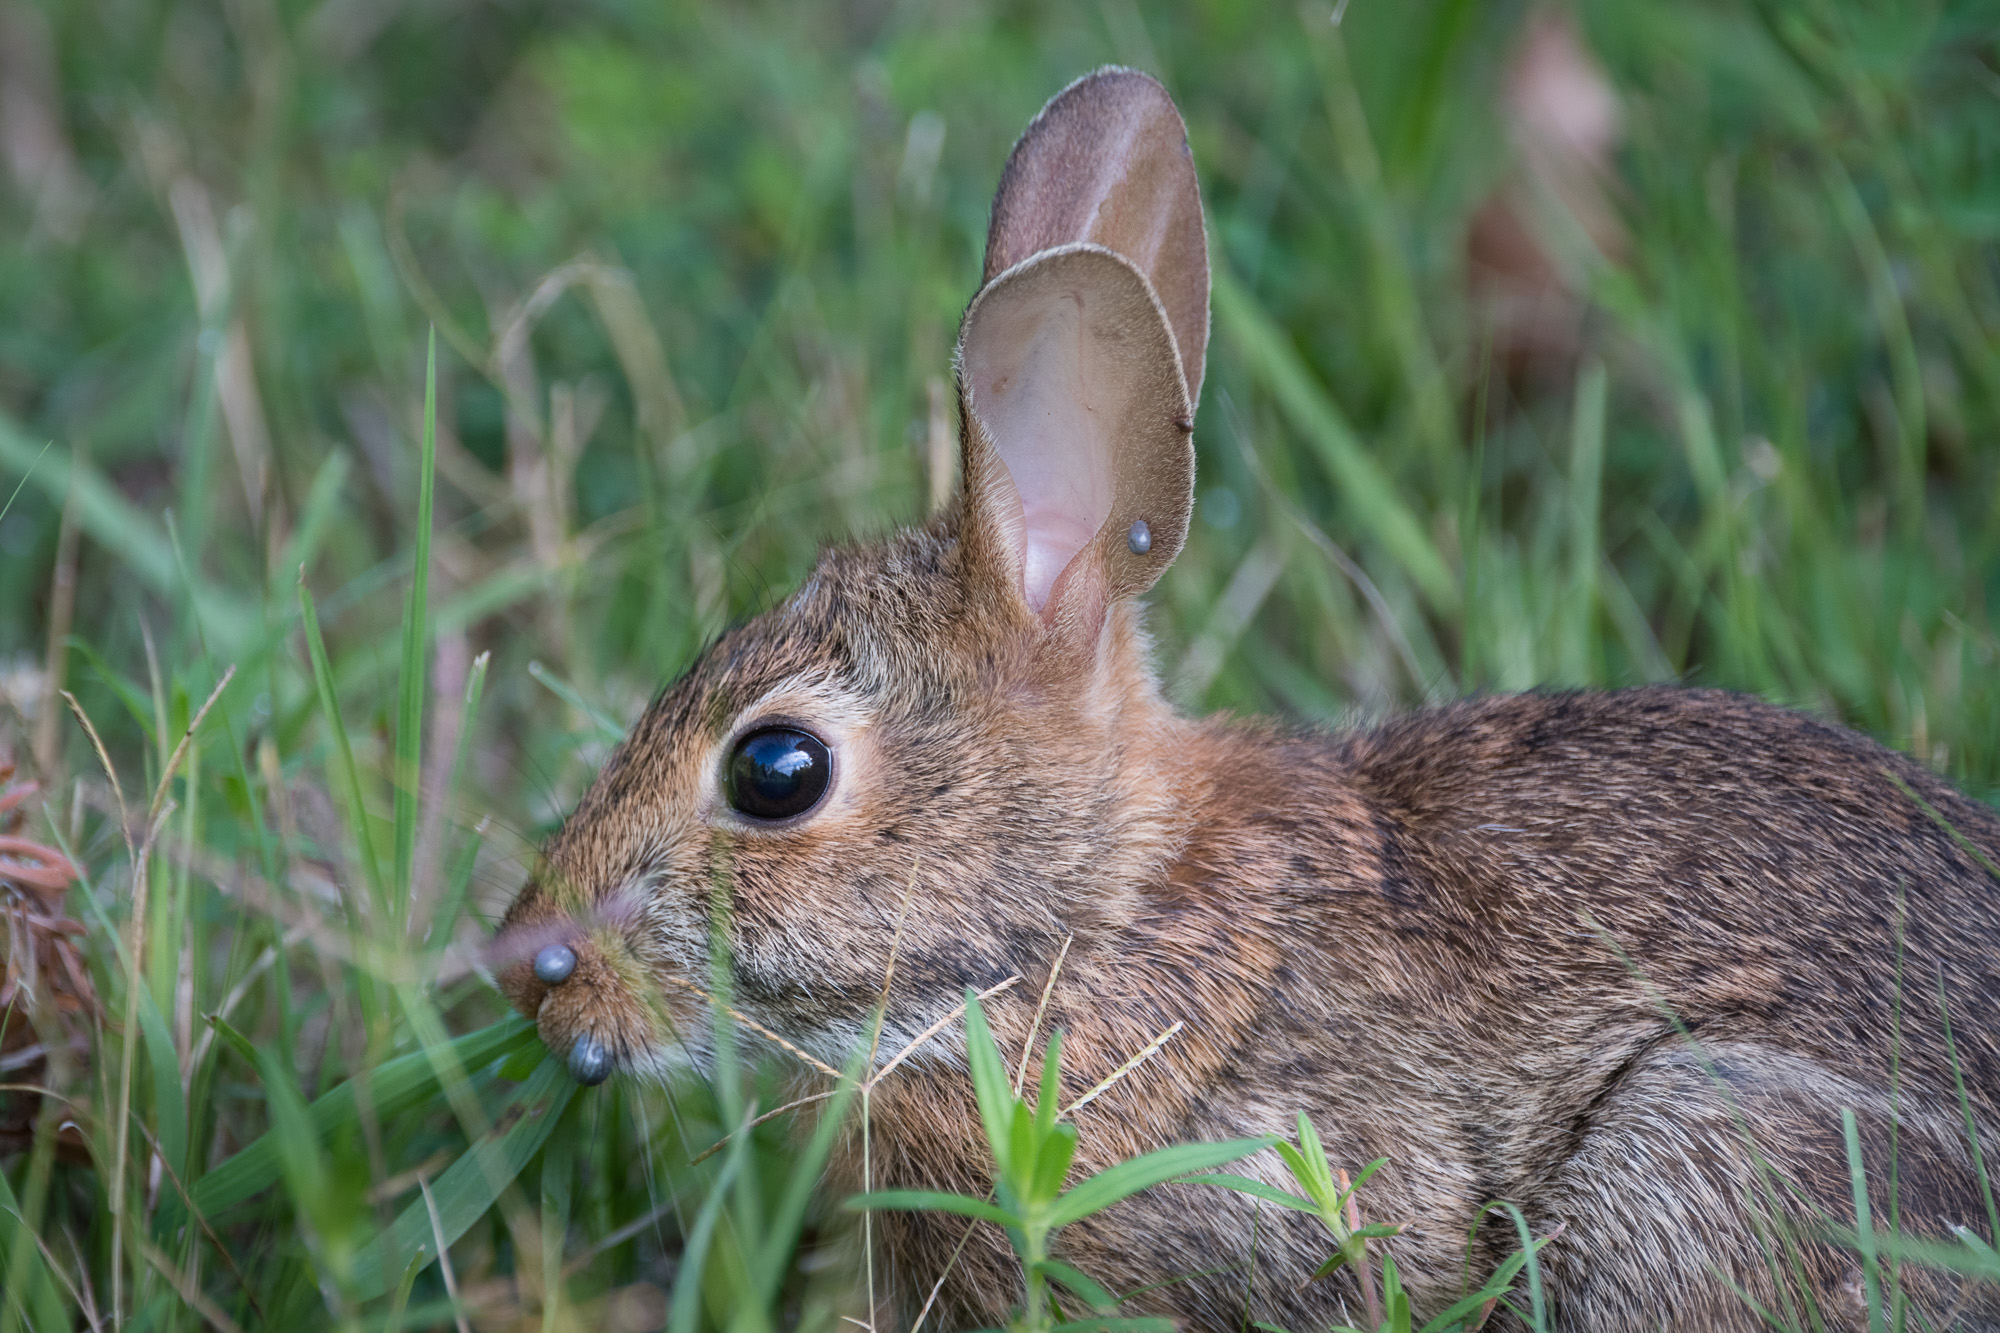 Closer view of the rabbit with 2 engorged ticks on its snout, and at least 2 ticks on its ear.